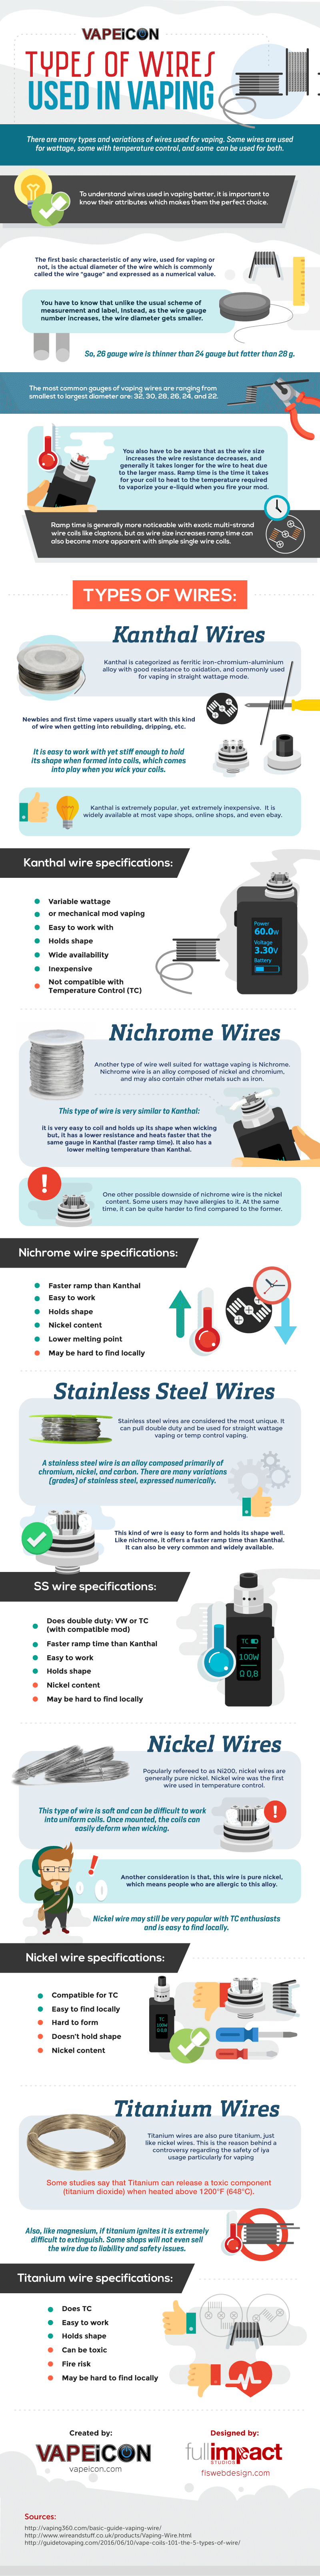 Types of wires used in Vaping - Infographic